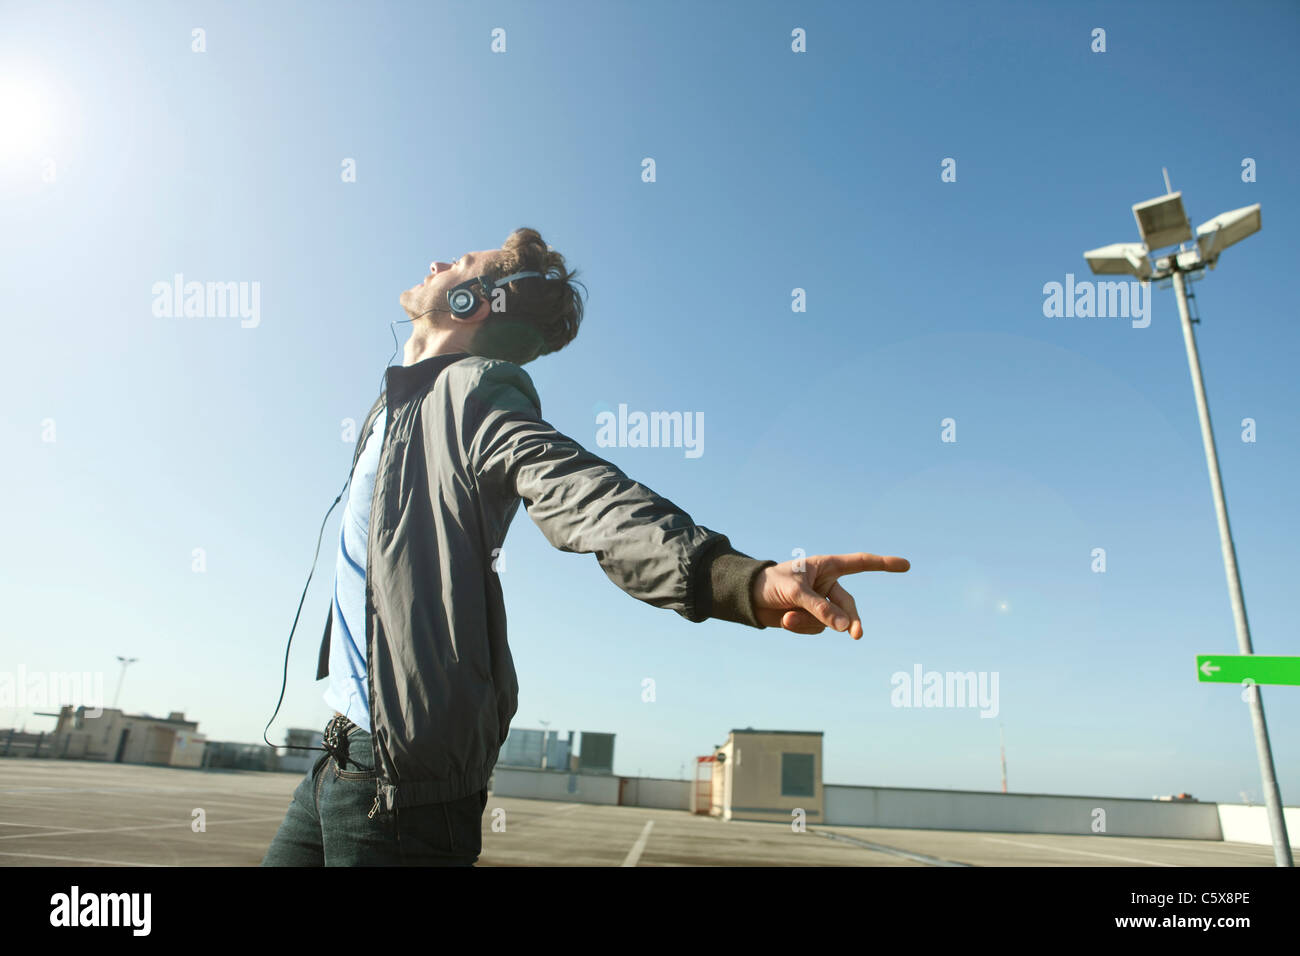 Germany, Berlin, Young man on deserted parking level wearing headphones listening to music - Stock Image